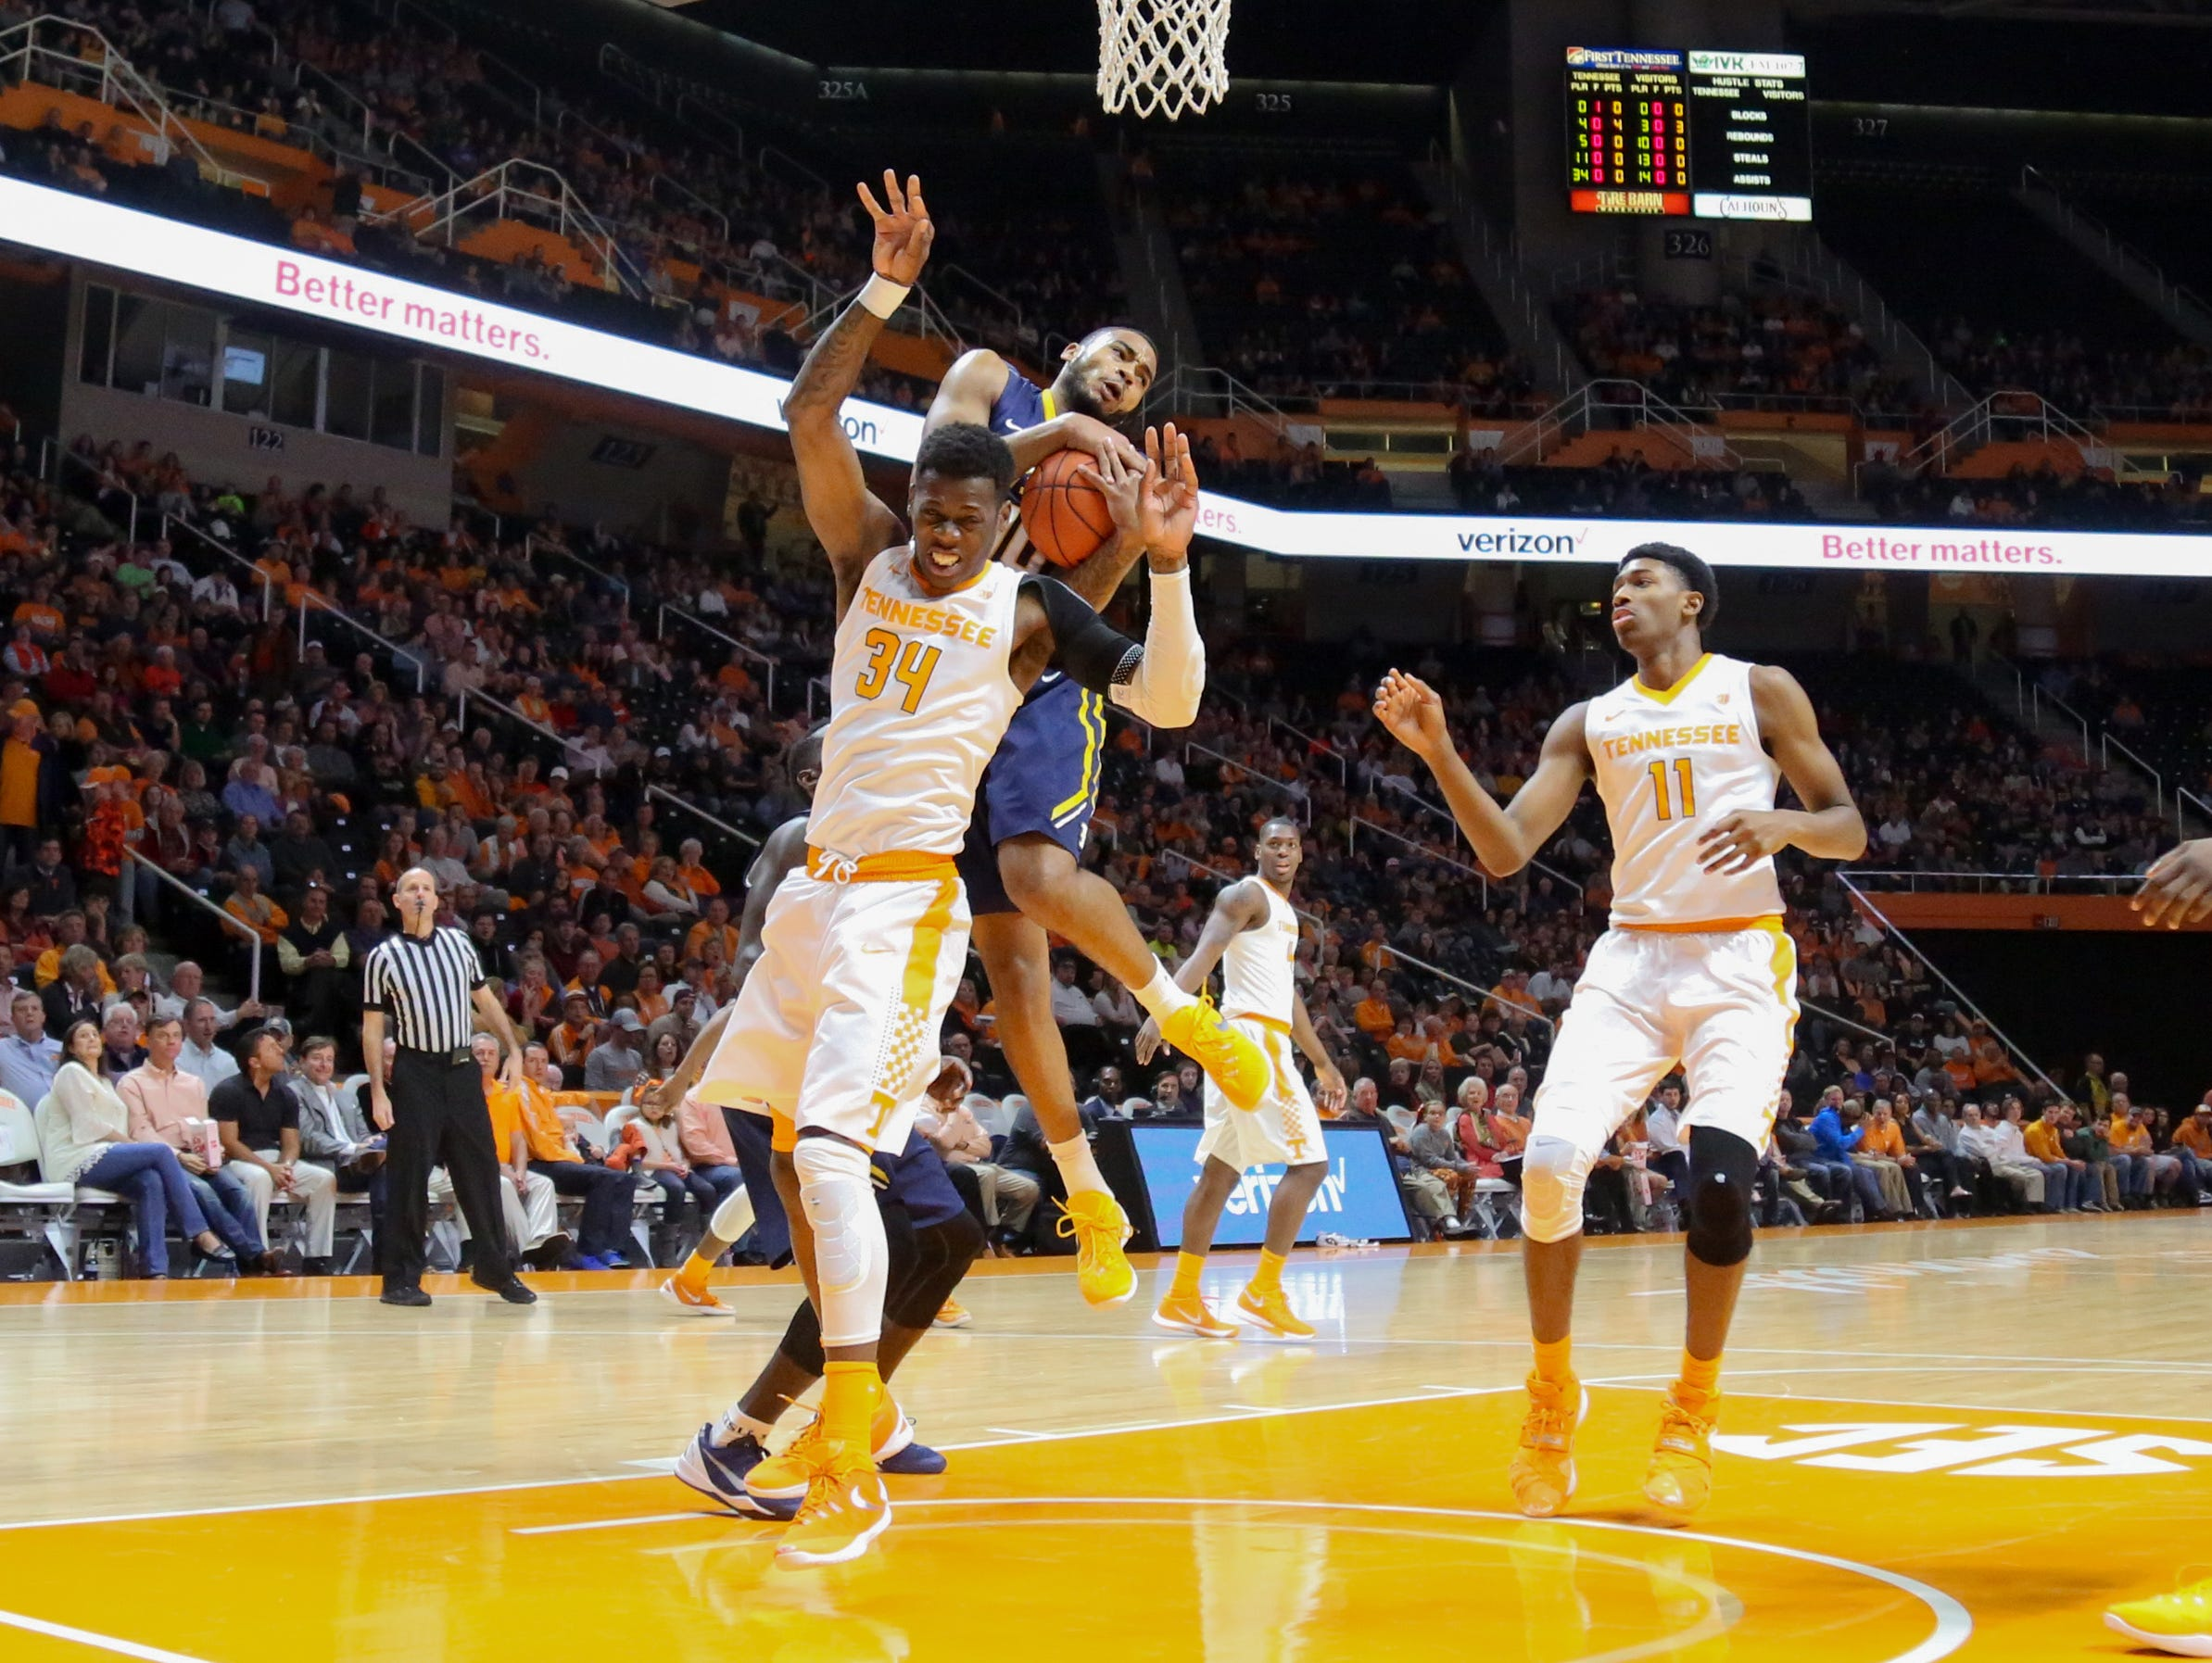 Sec Mens Basketball Scores Today | Basketball Scores